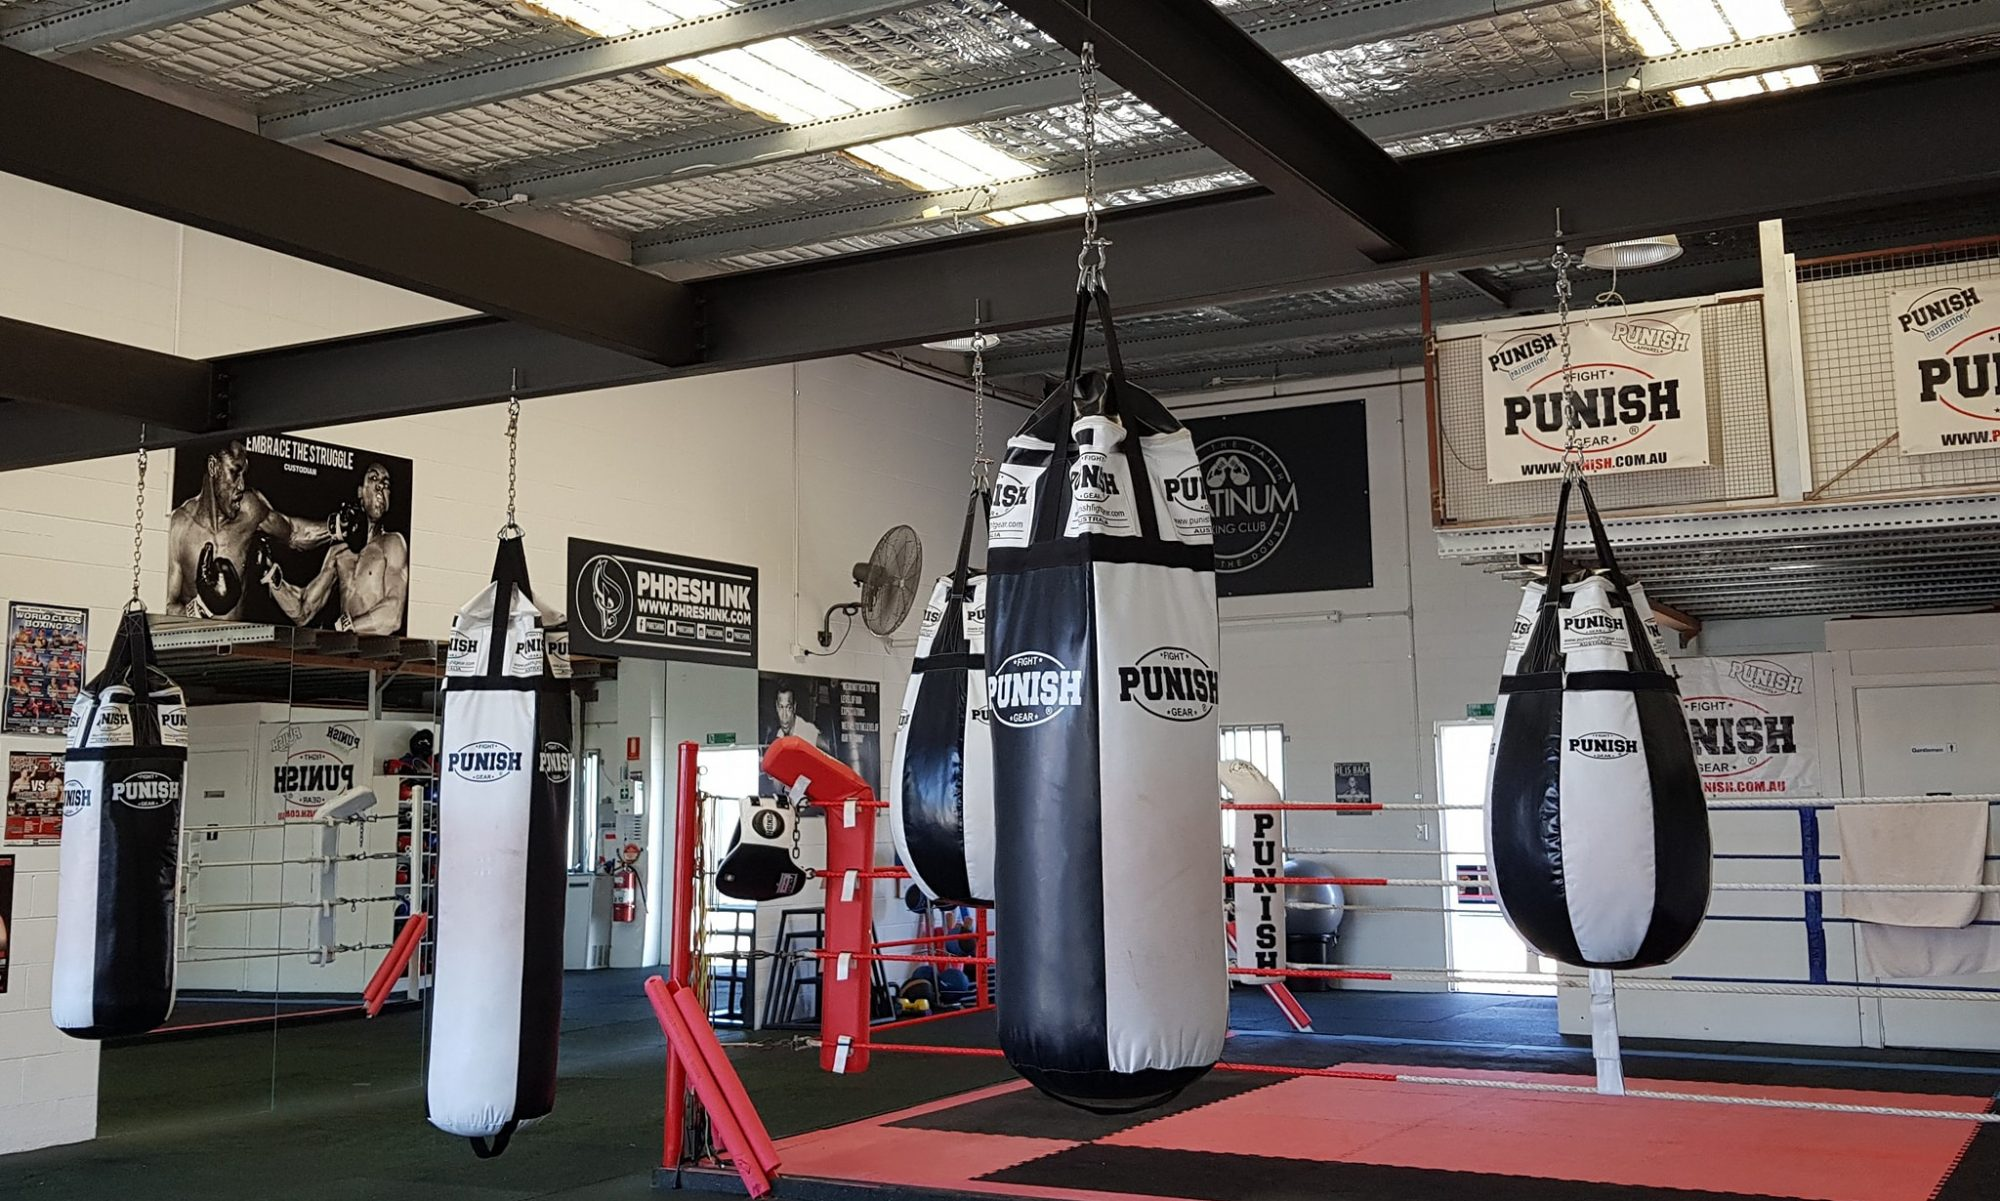 Platinum boxing club – Feed the Faith, Starve the Doubt